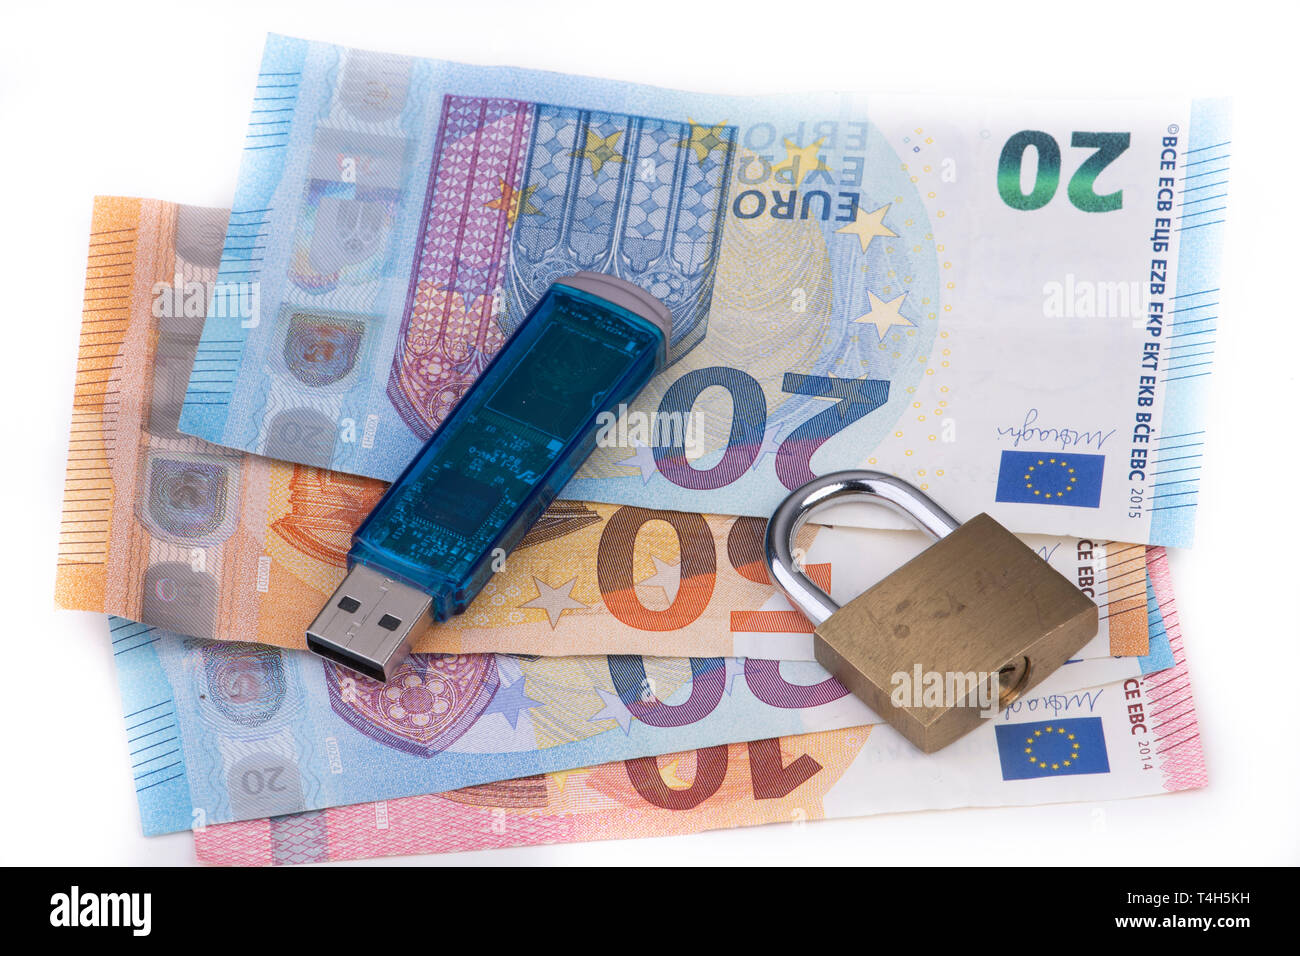 Data Collection and Sale of Data - Data Stick with Padlock and Euro Banknotes - Stock Image